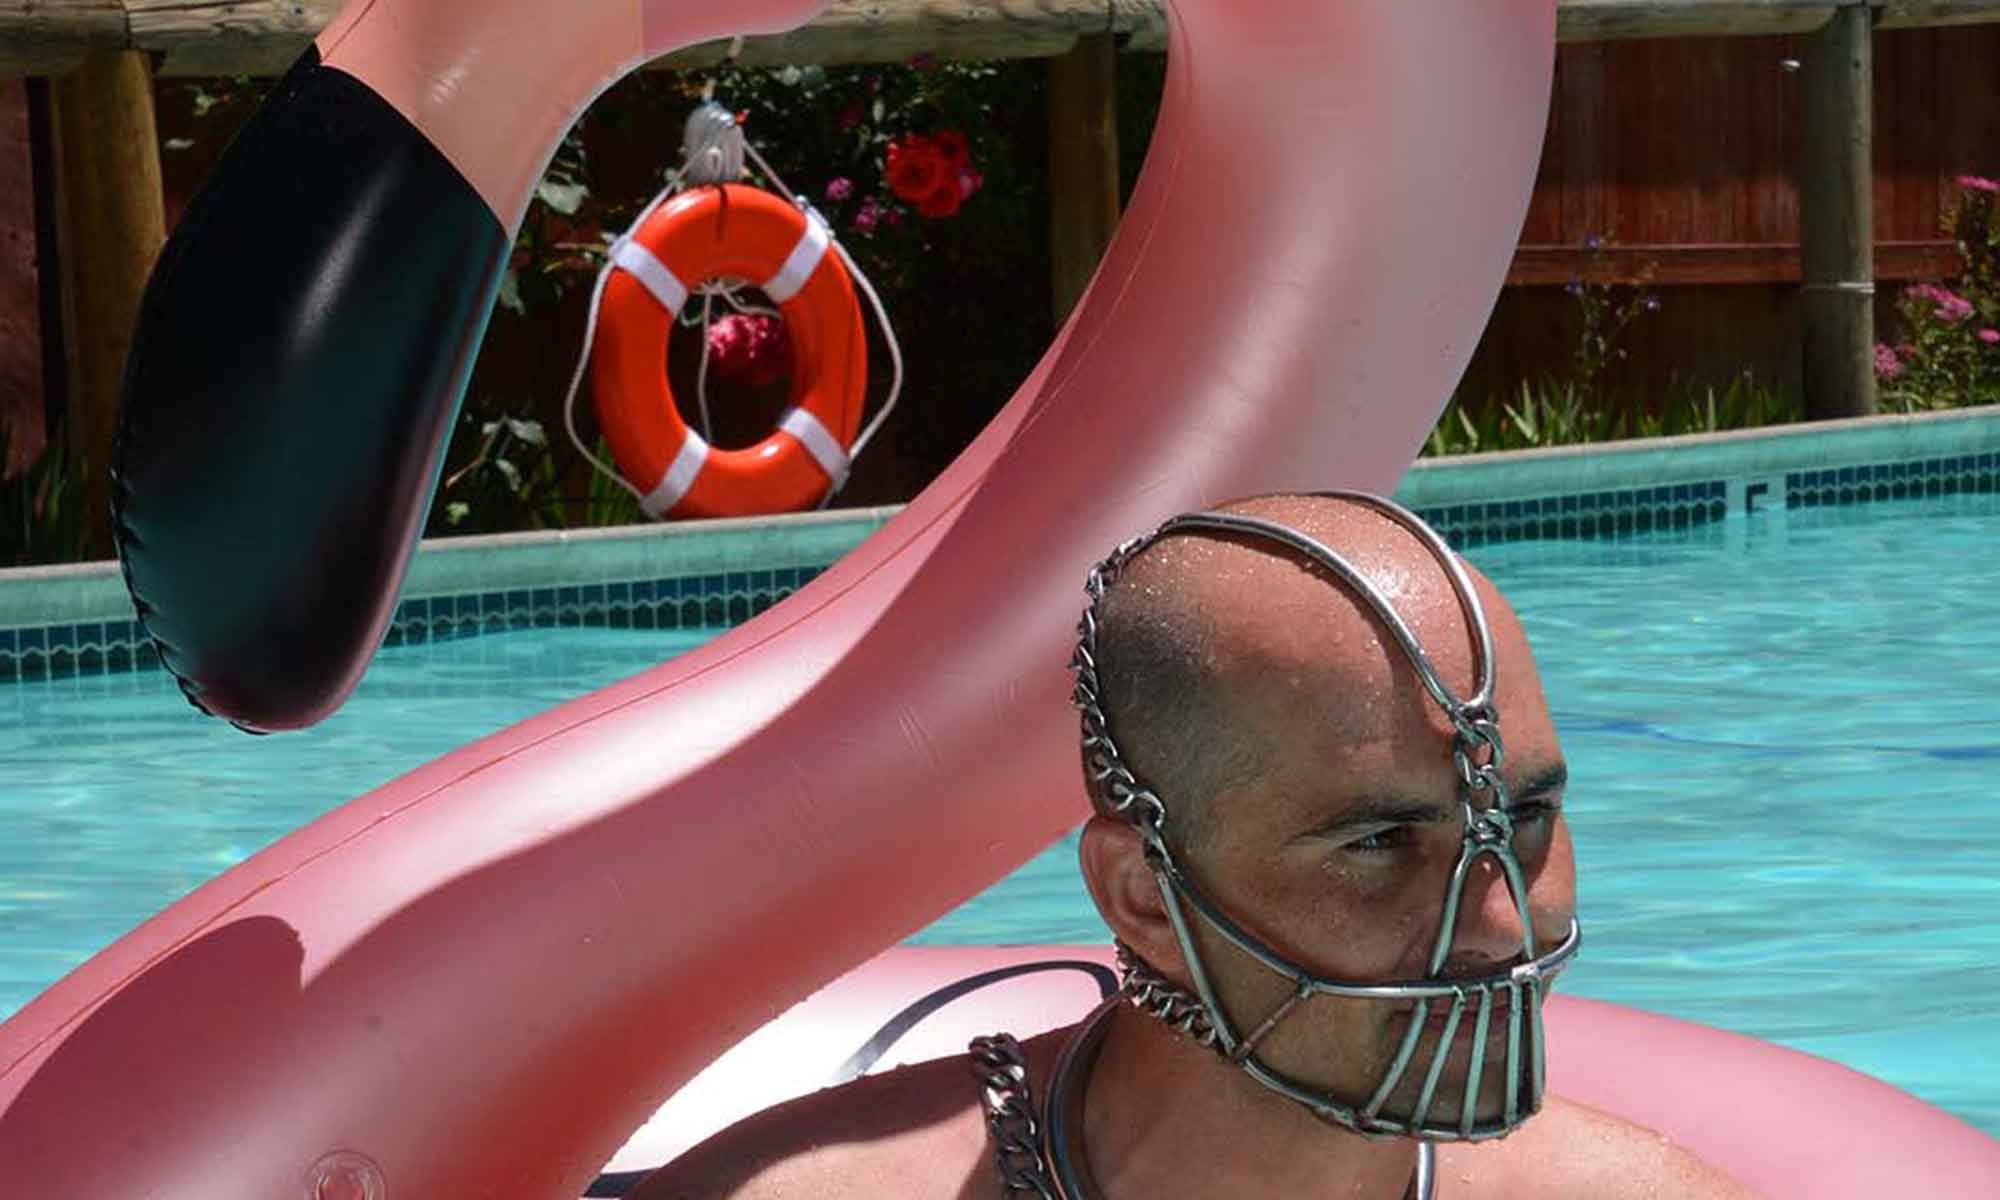 Boundless attendee wearing face cage in pool with inflatable flamingo